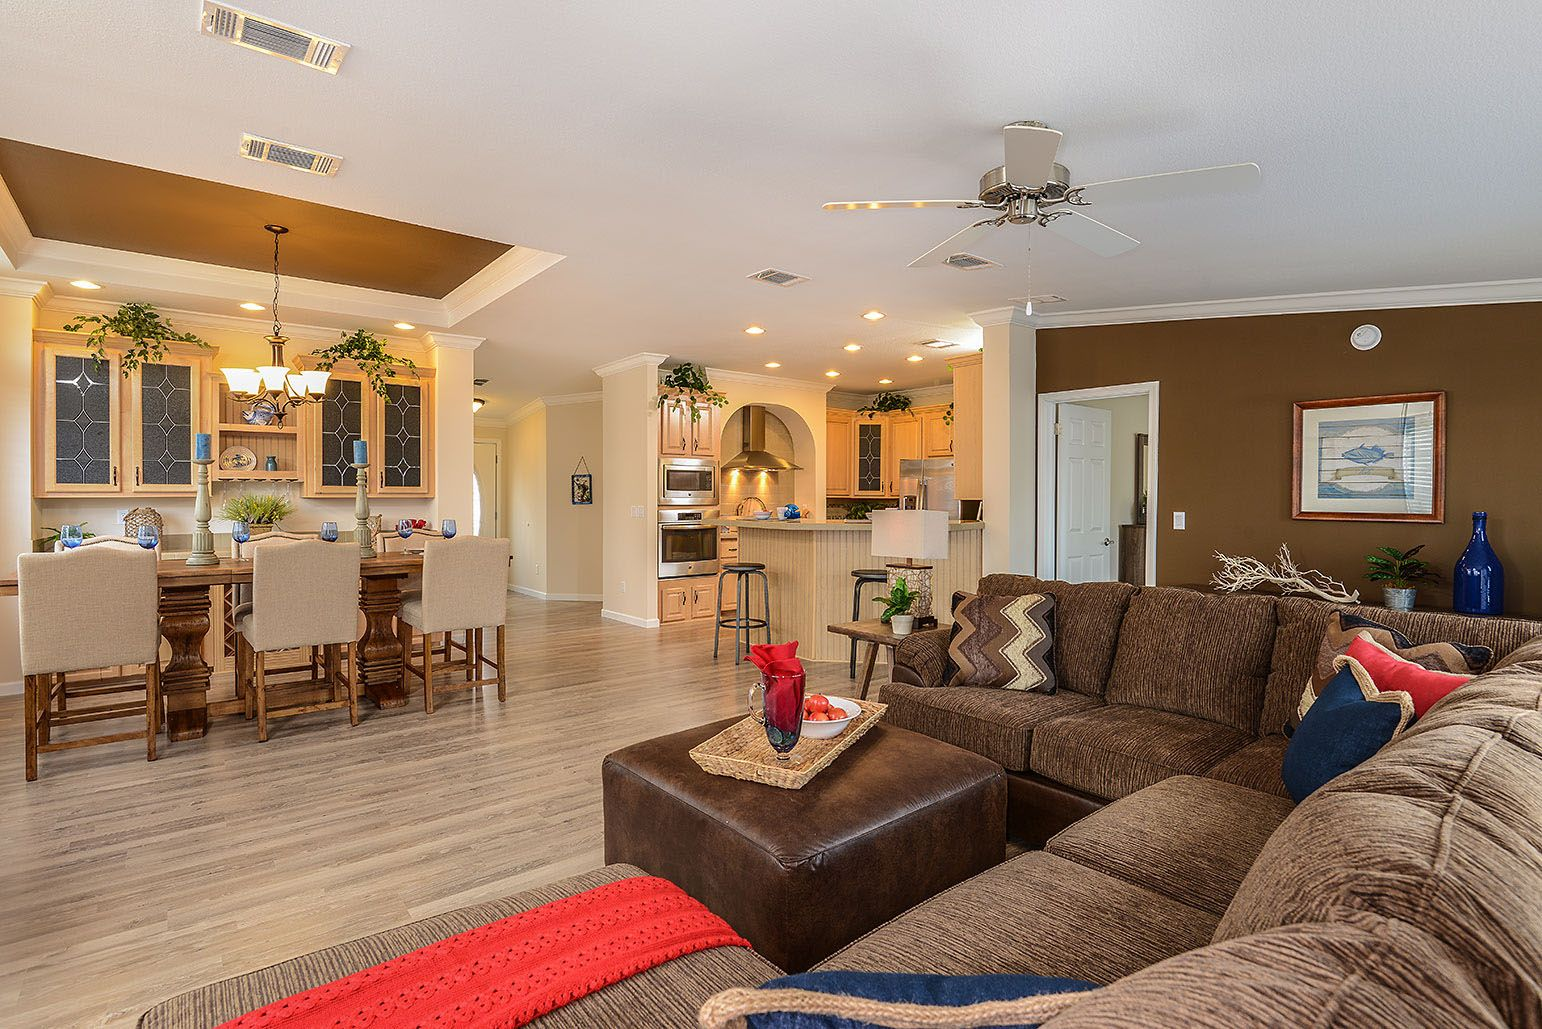 Living Room, Dining Room, & Kitchen http//www.jachomes